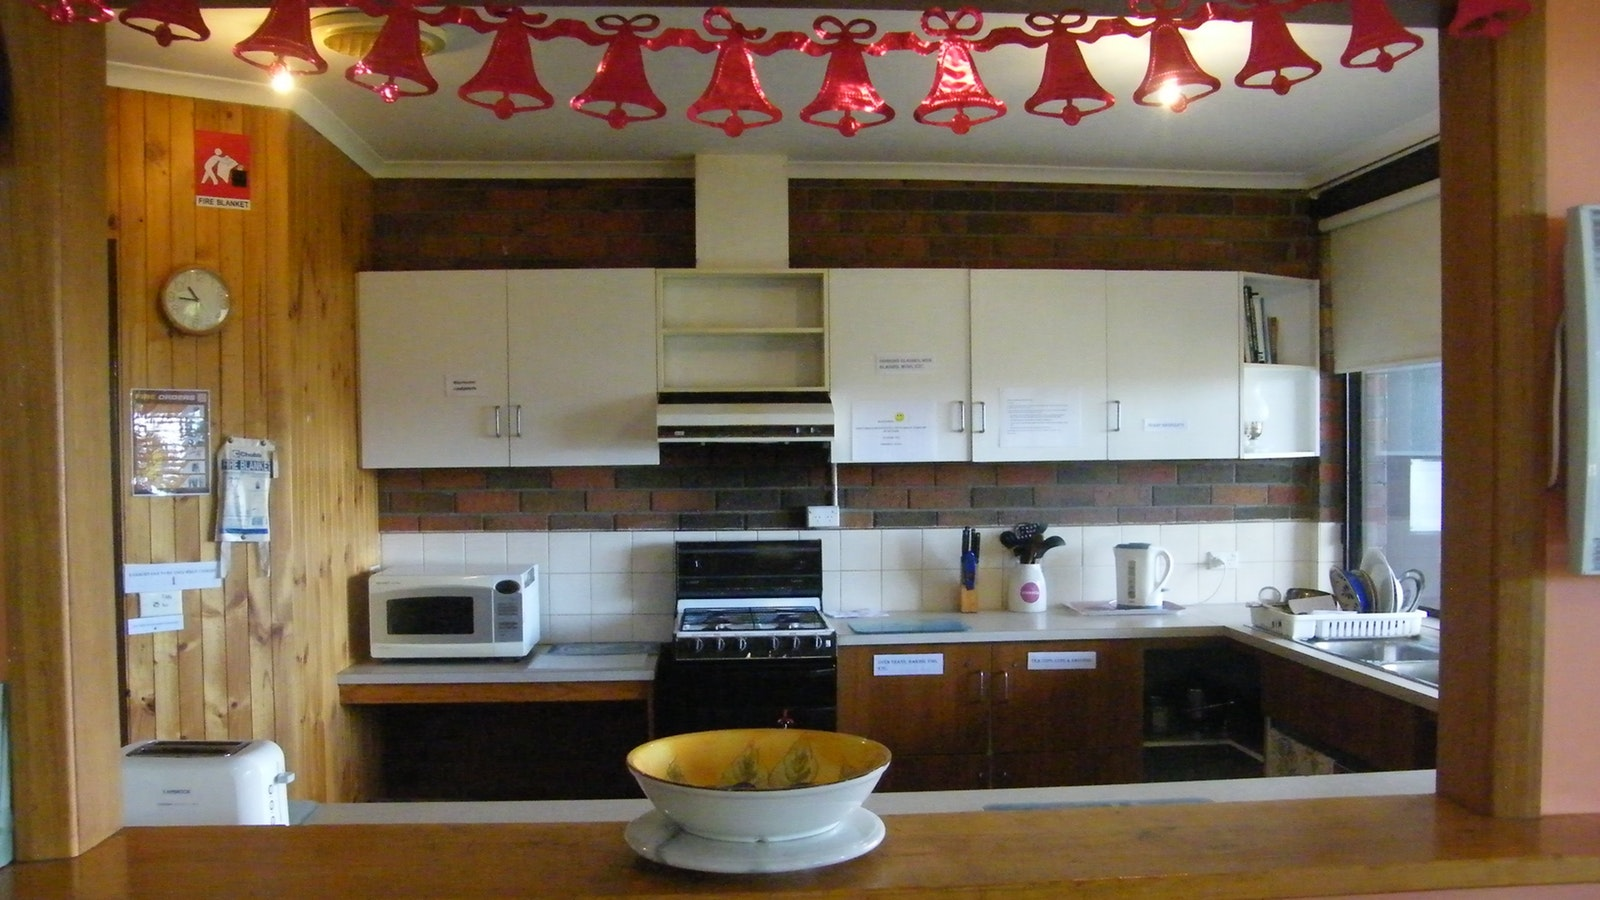 Kitchen fully equipped for communal use